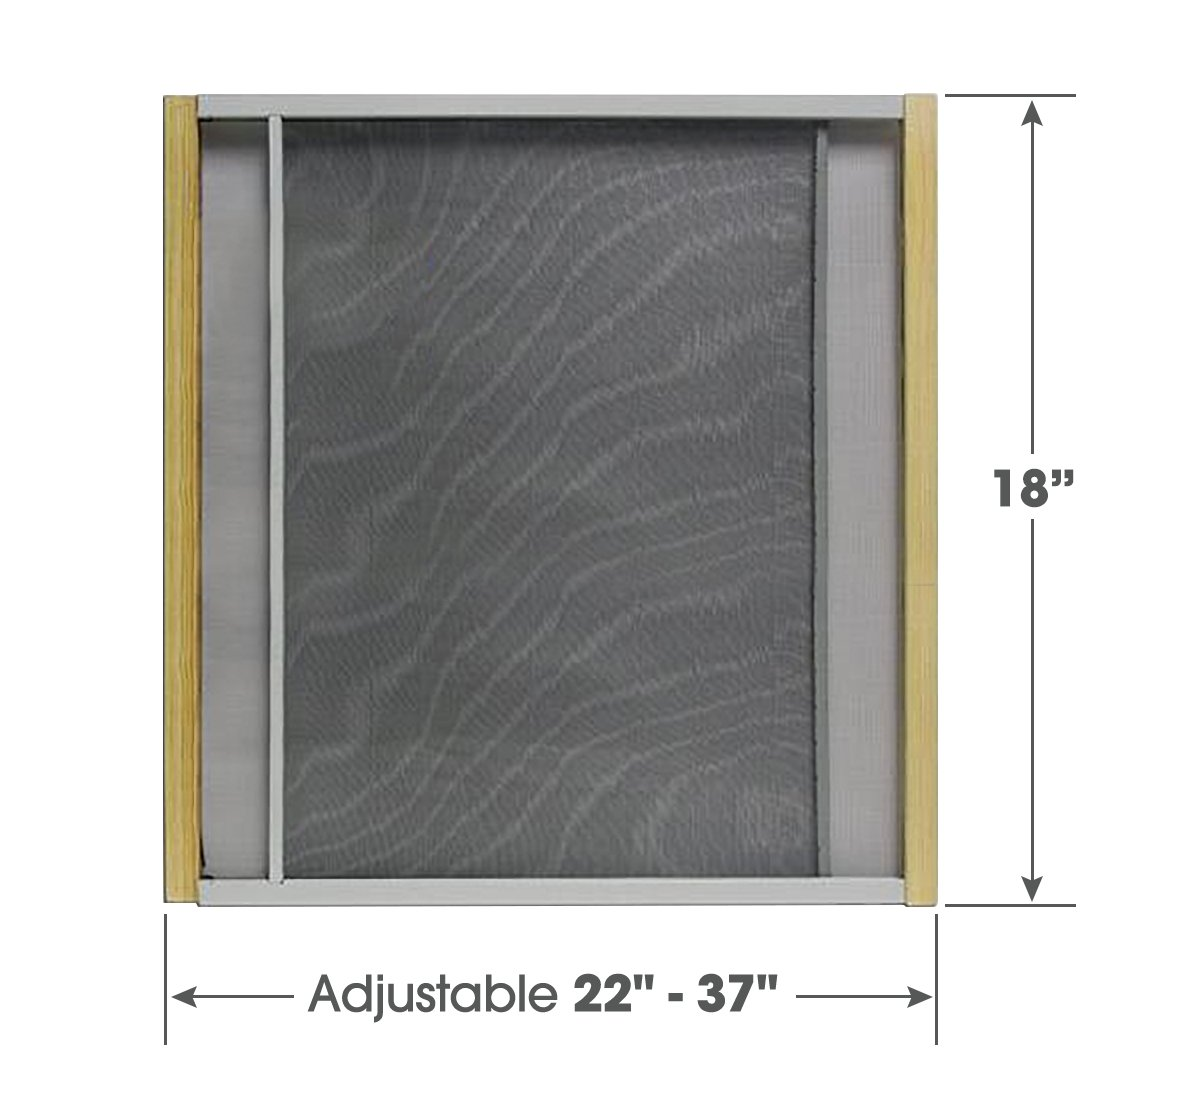 Adjustable Window Screen Built To Help Air Circulate Through Your